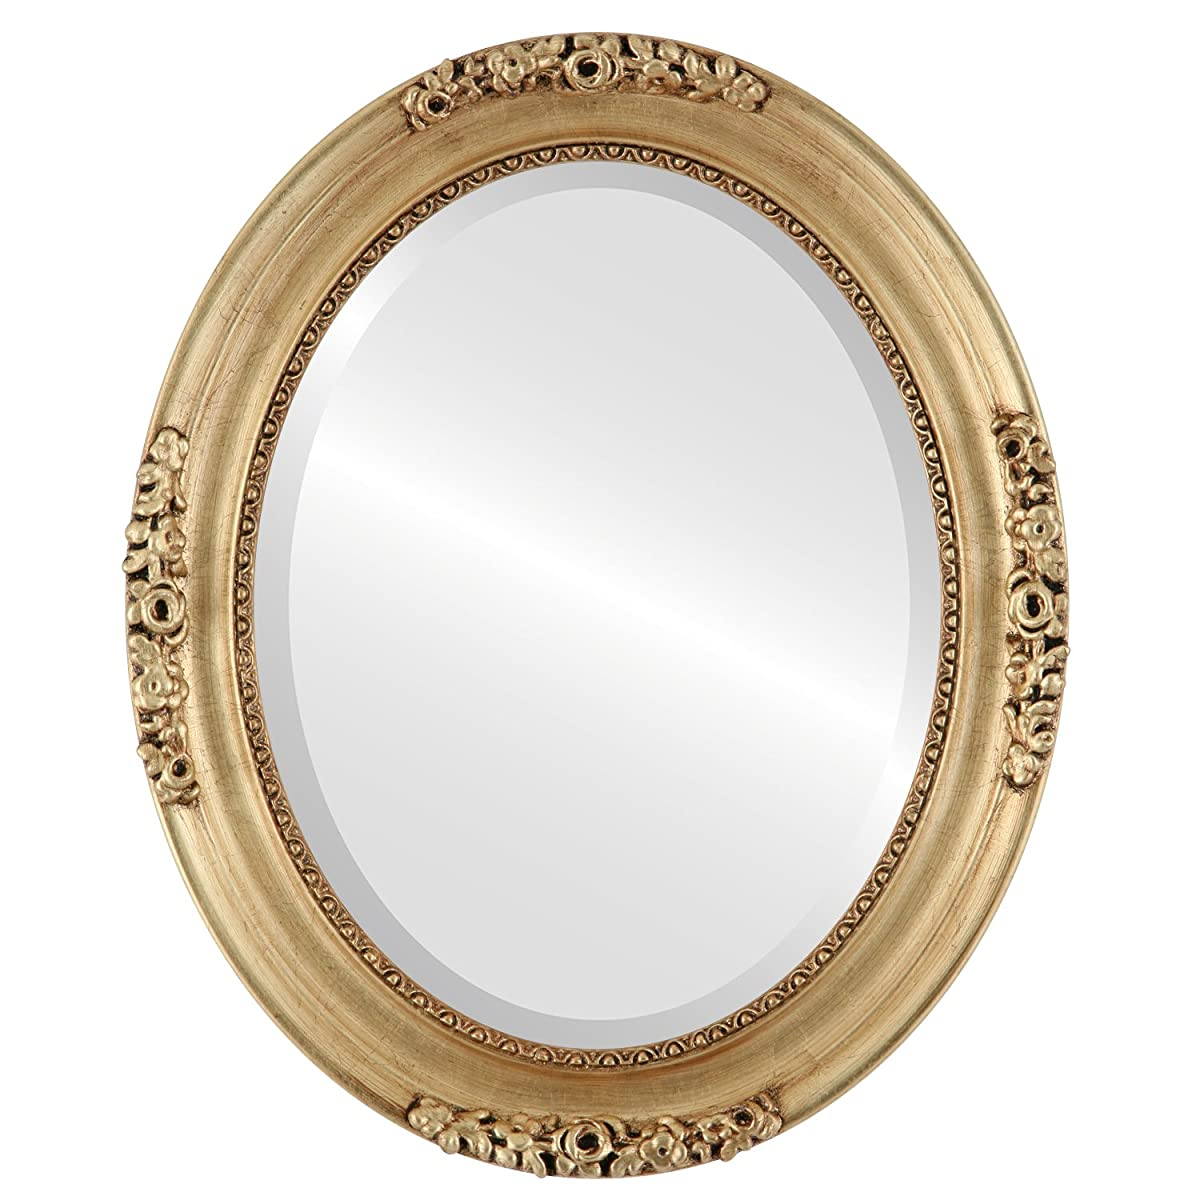 Oval Beveled Wall Mirror for Home Decor - Versailles Style - Gold Leaf - 16x20 outside dimensions